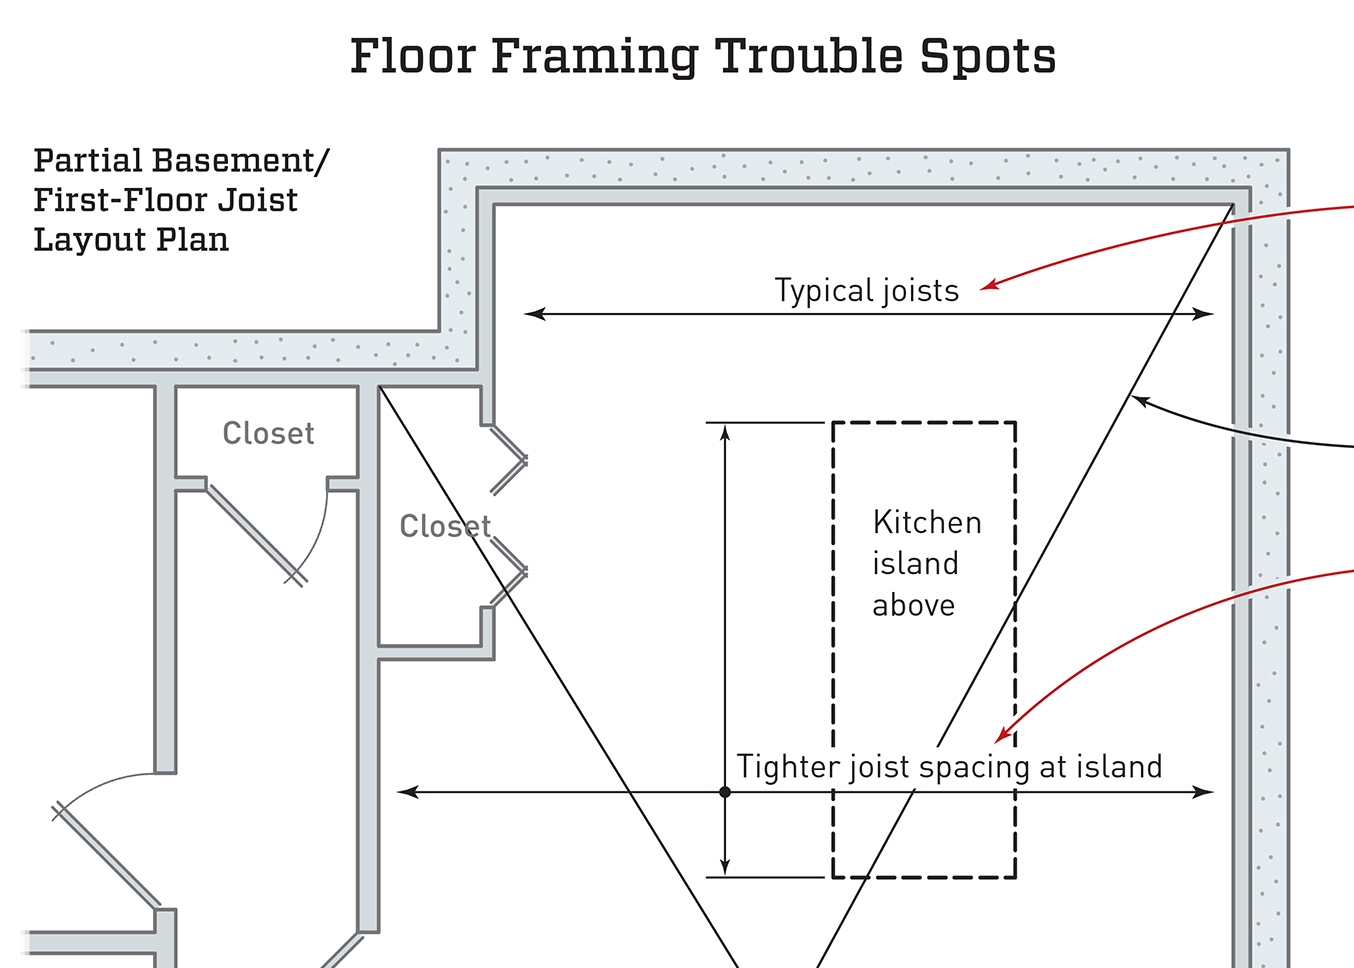 0817 jlc ts framing pitfalls promo framing trouble spots jlc online framing, building resources